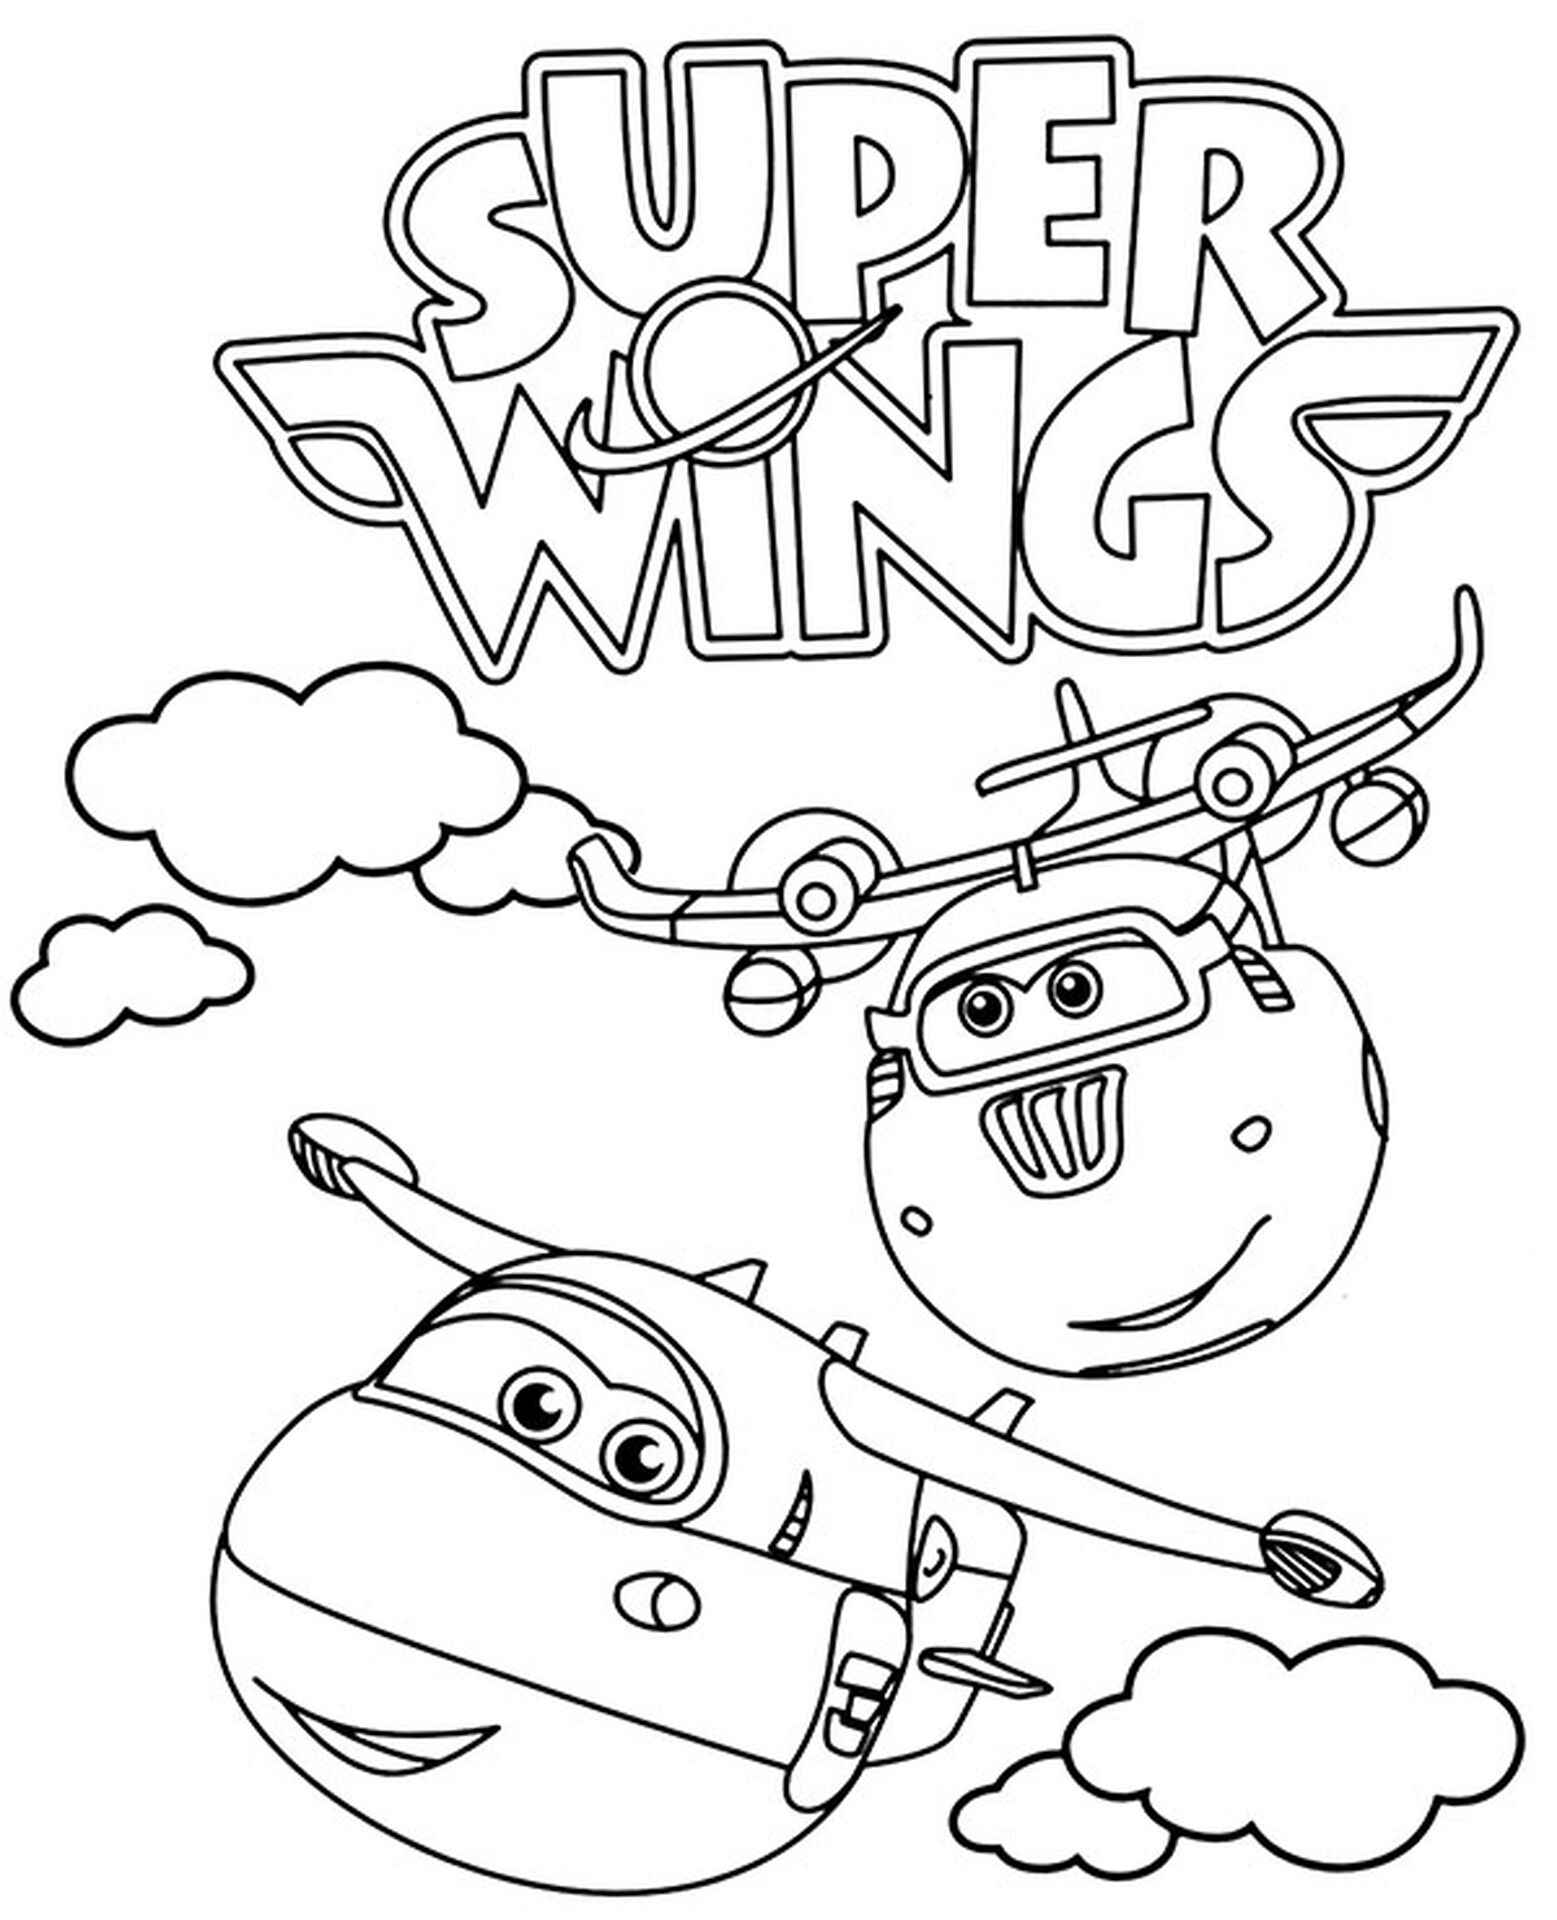 Super Wings Coloring Page